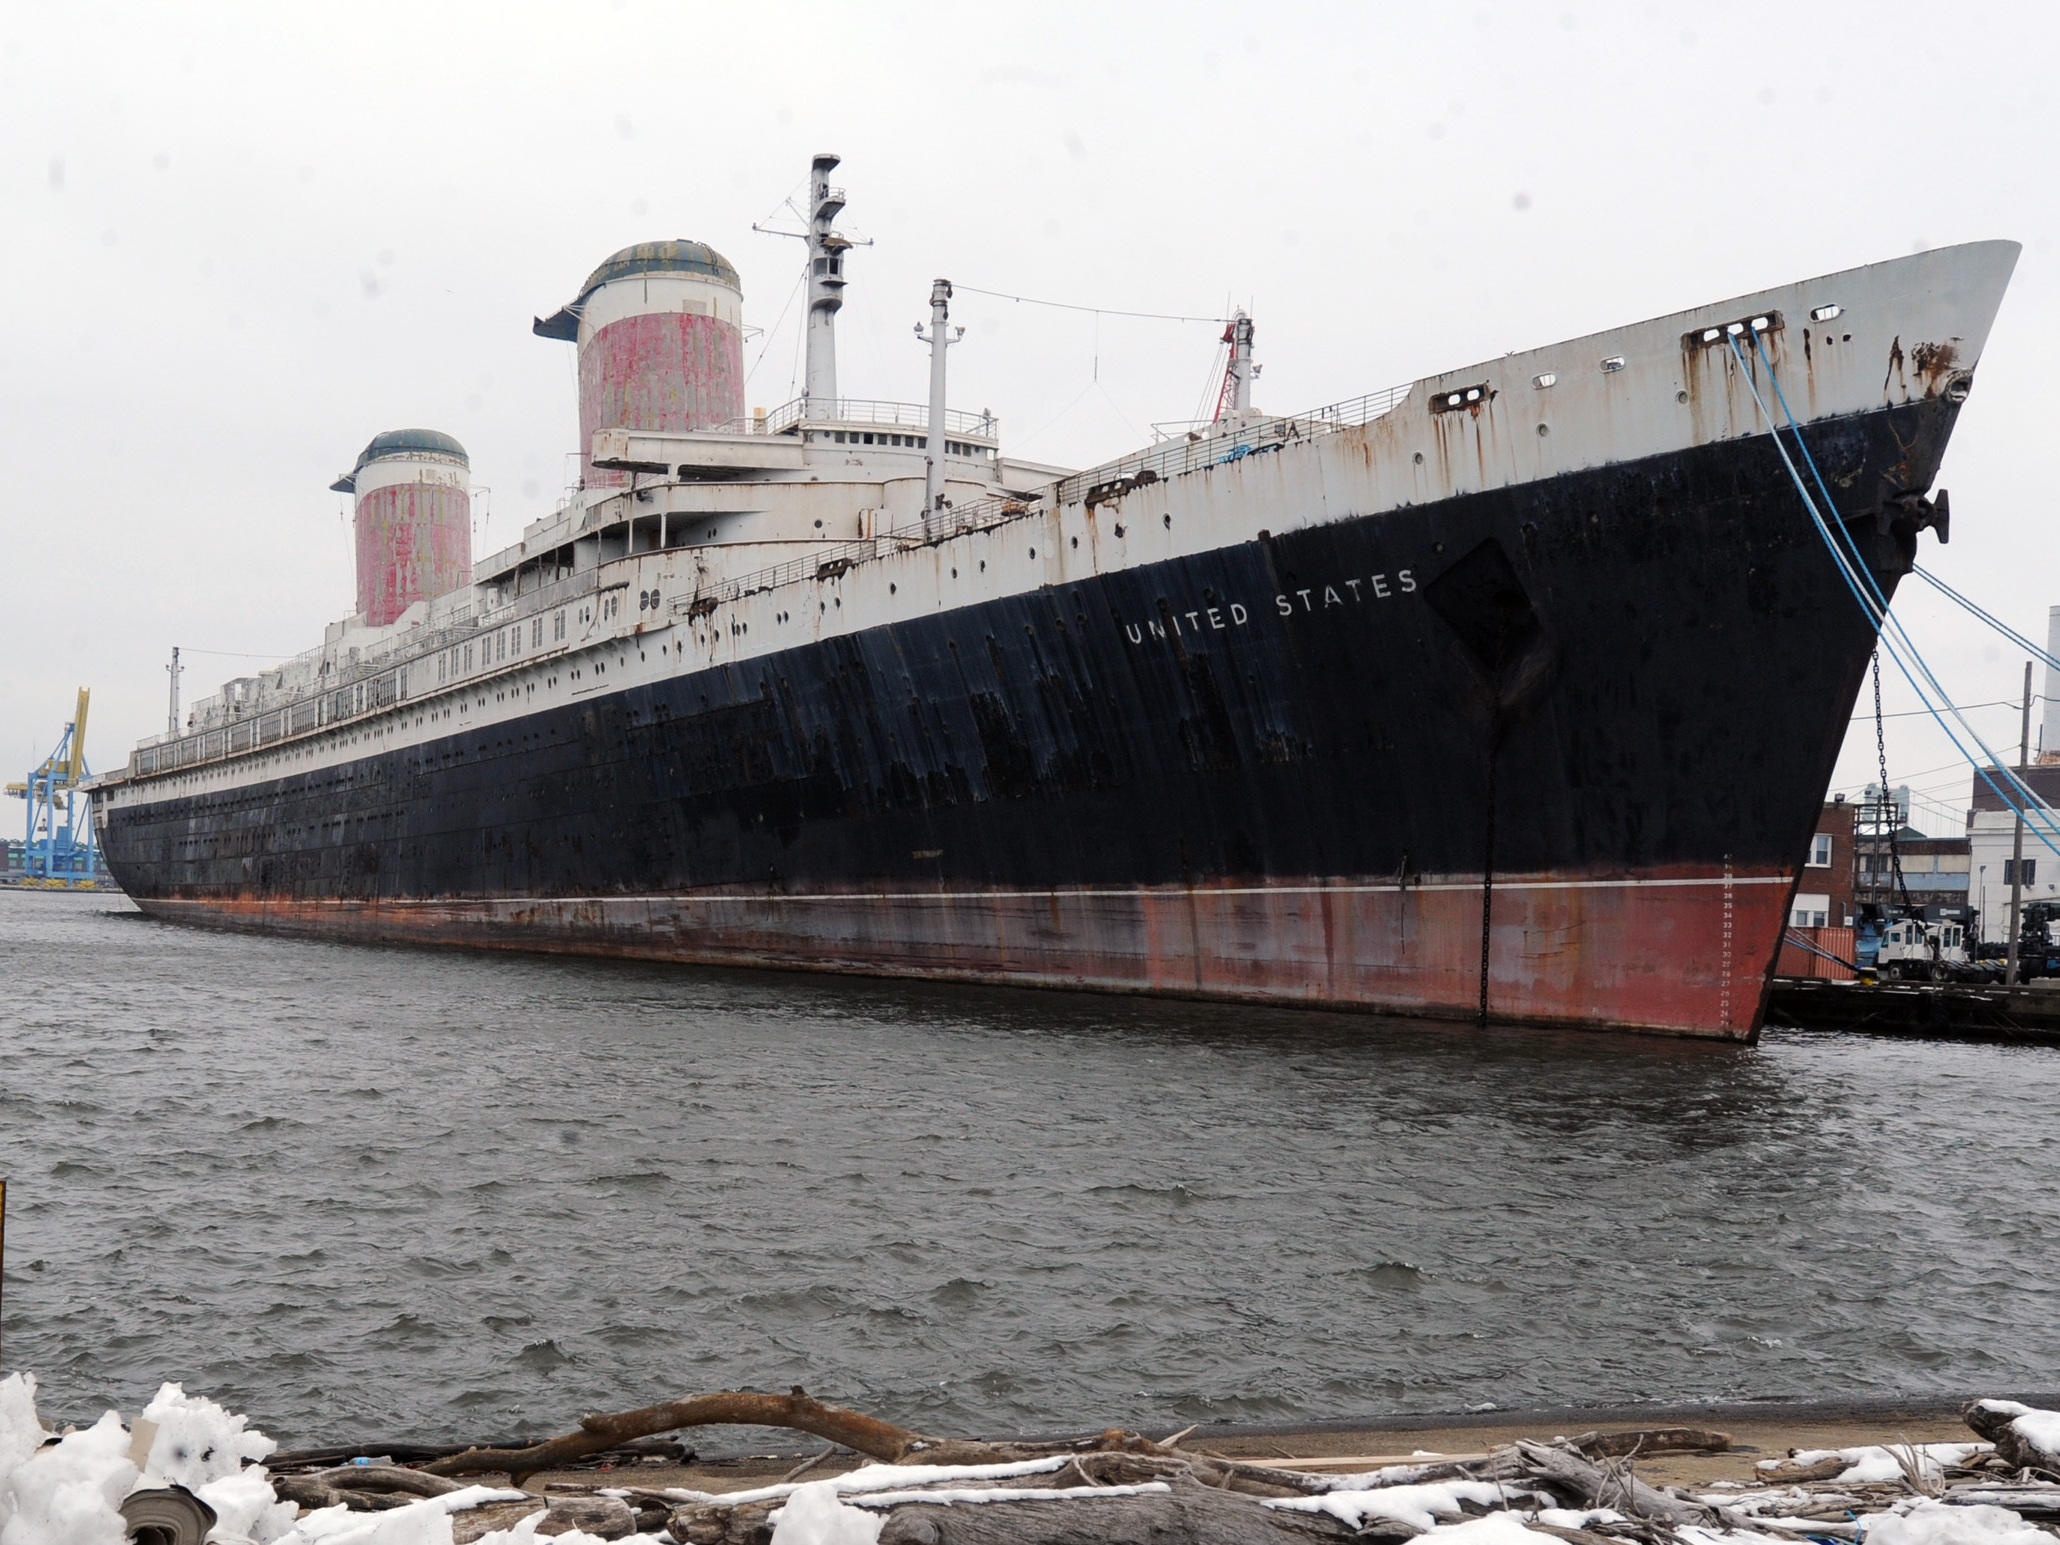 SS United States, Once A Marvel Of Technology, May Be Sold For Scrap